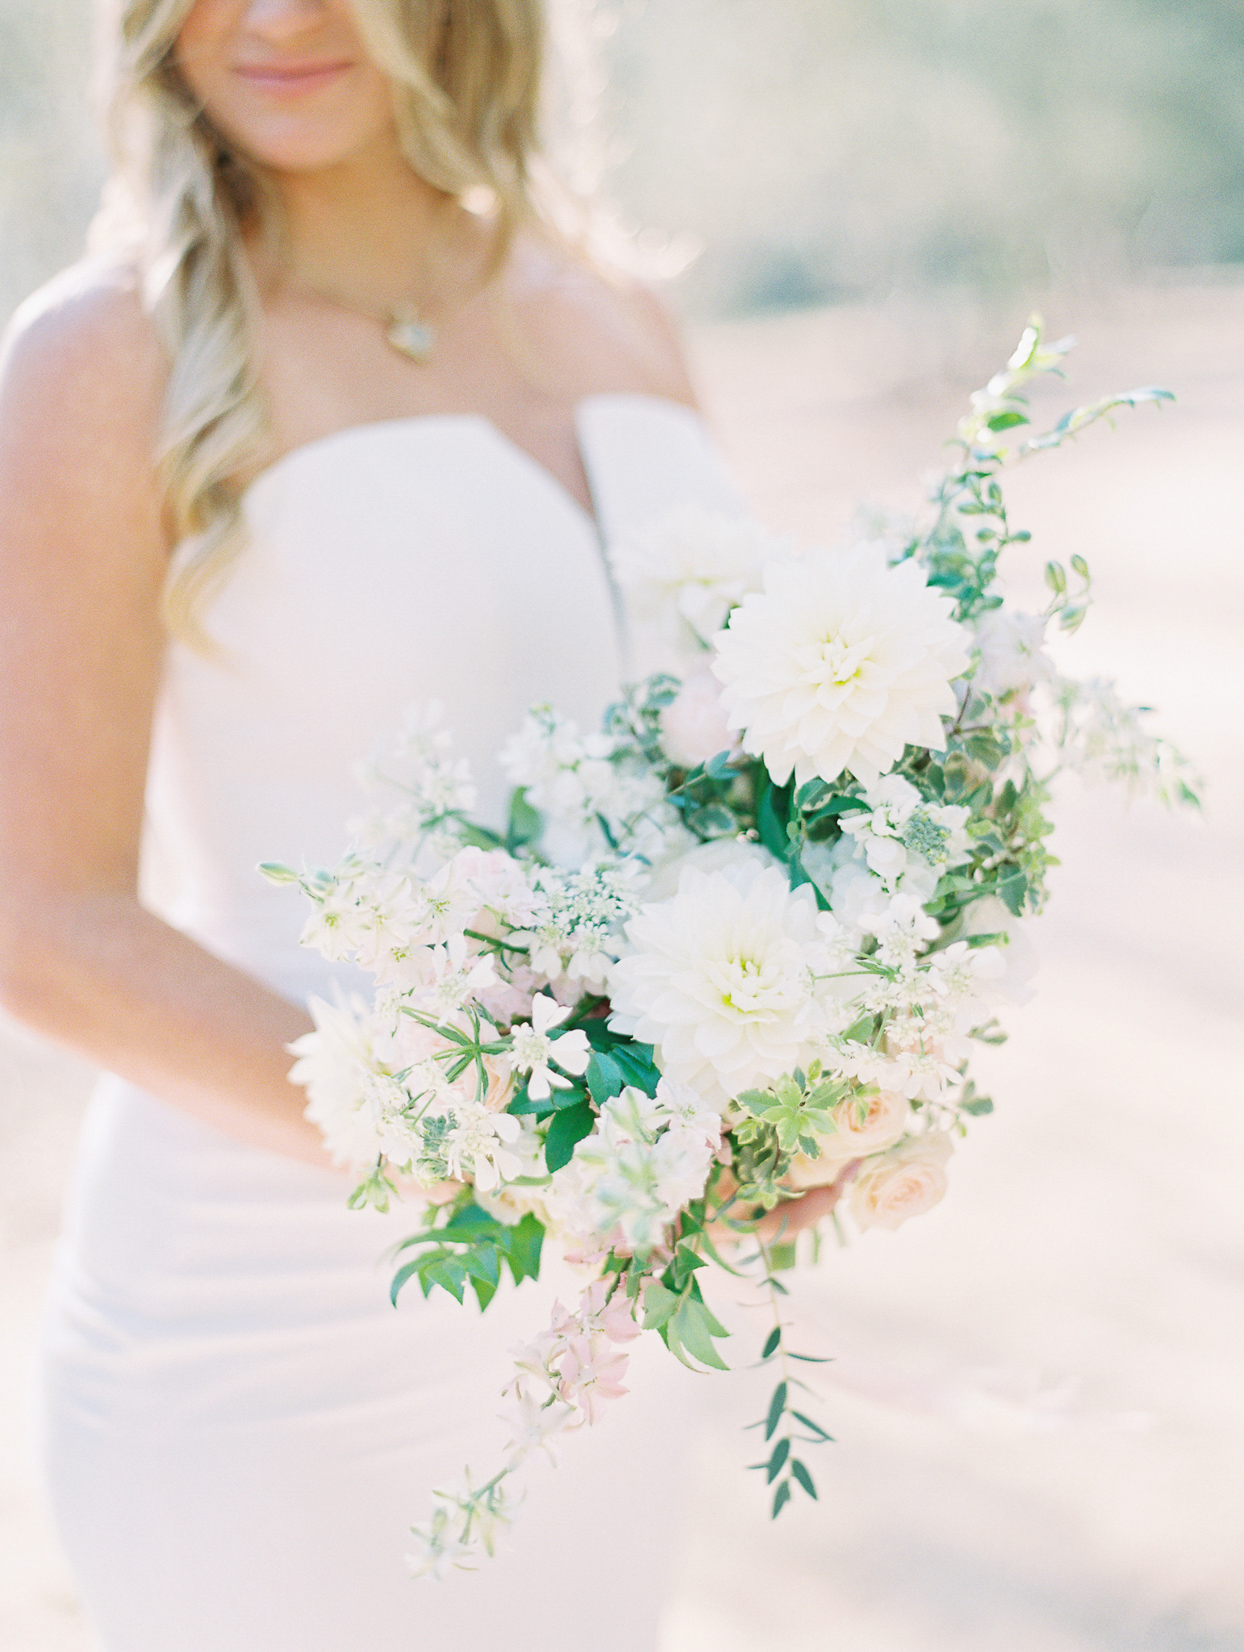 bride holding white and green floral wedding bouquet